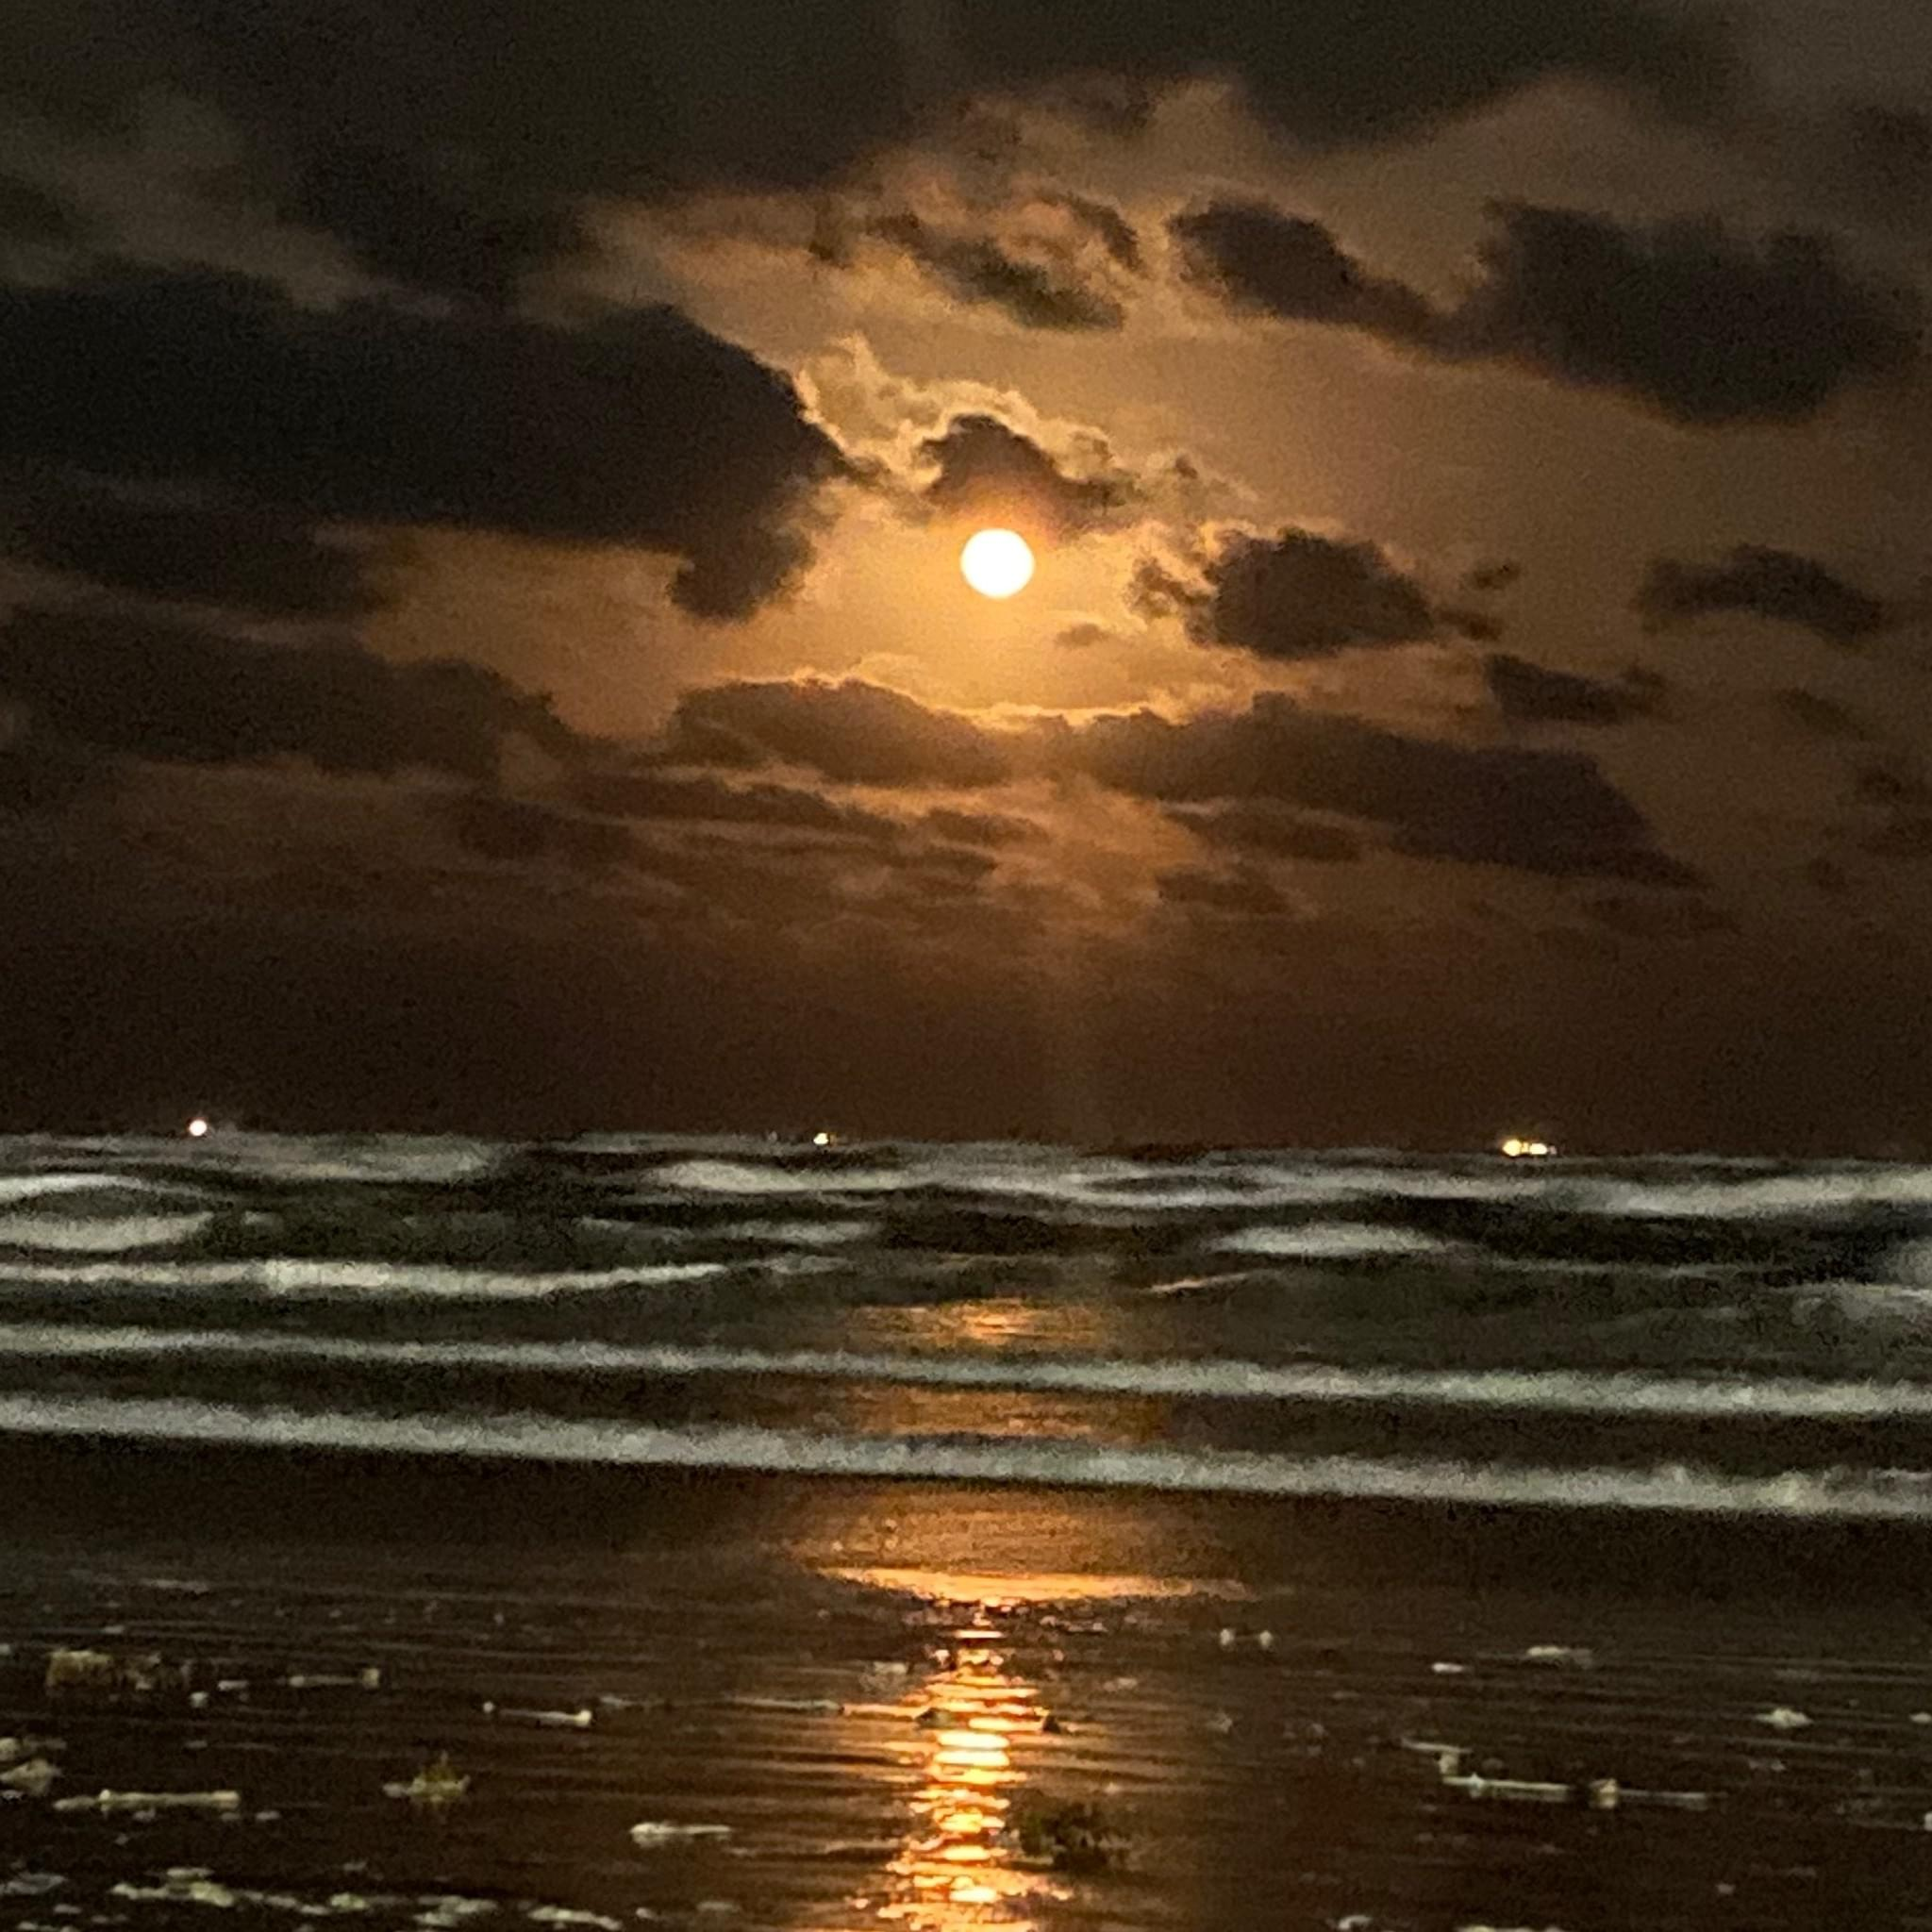 The Last Supermoon of 2020